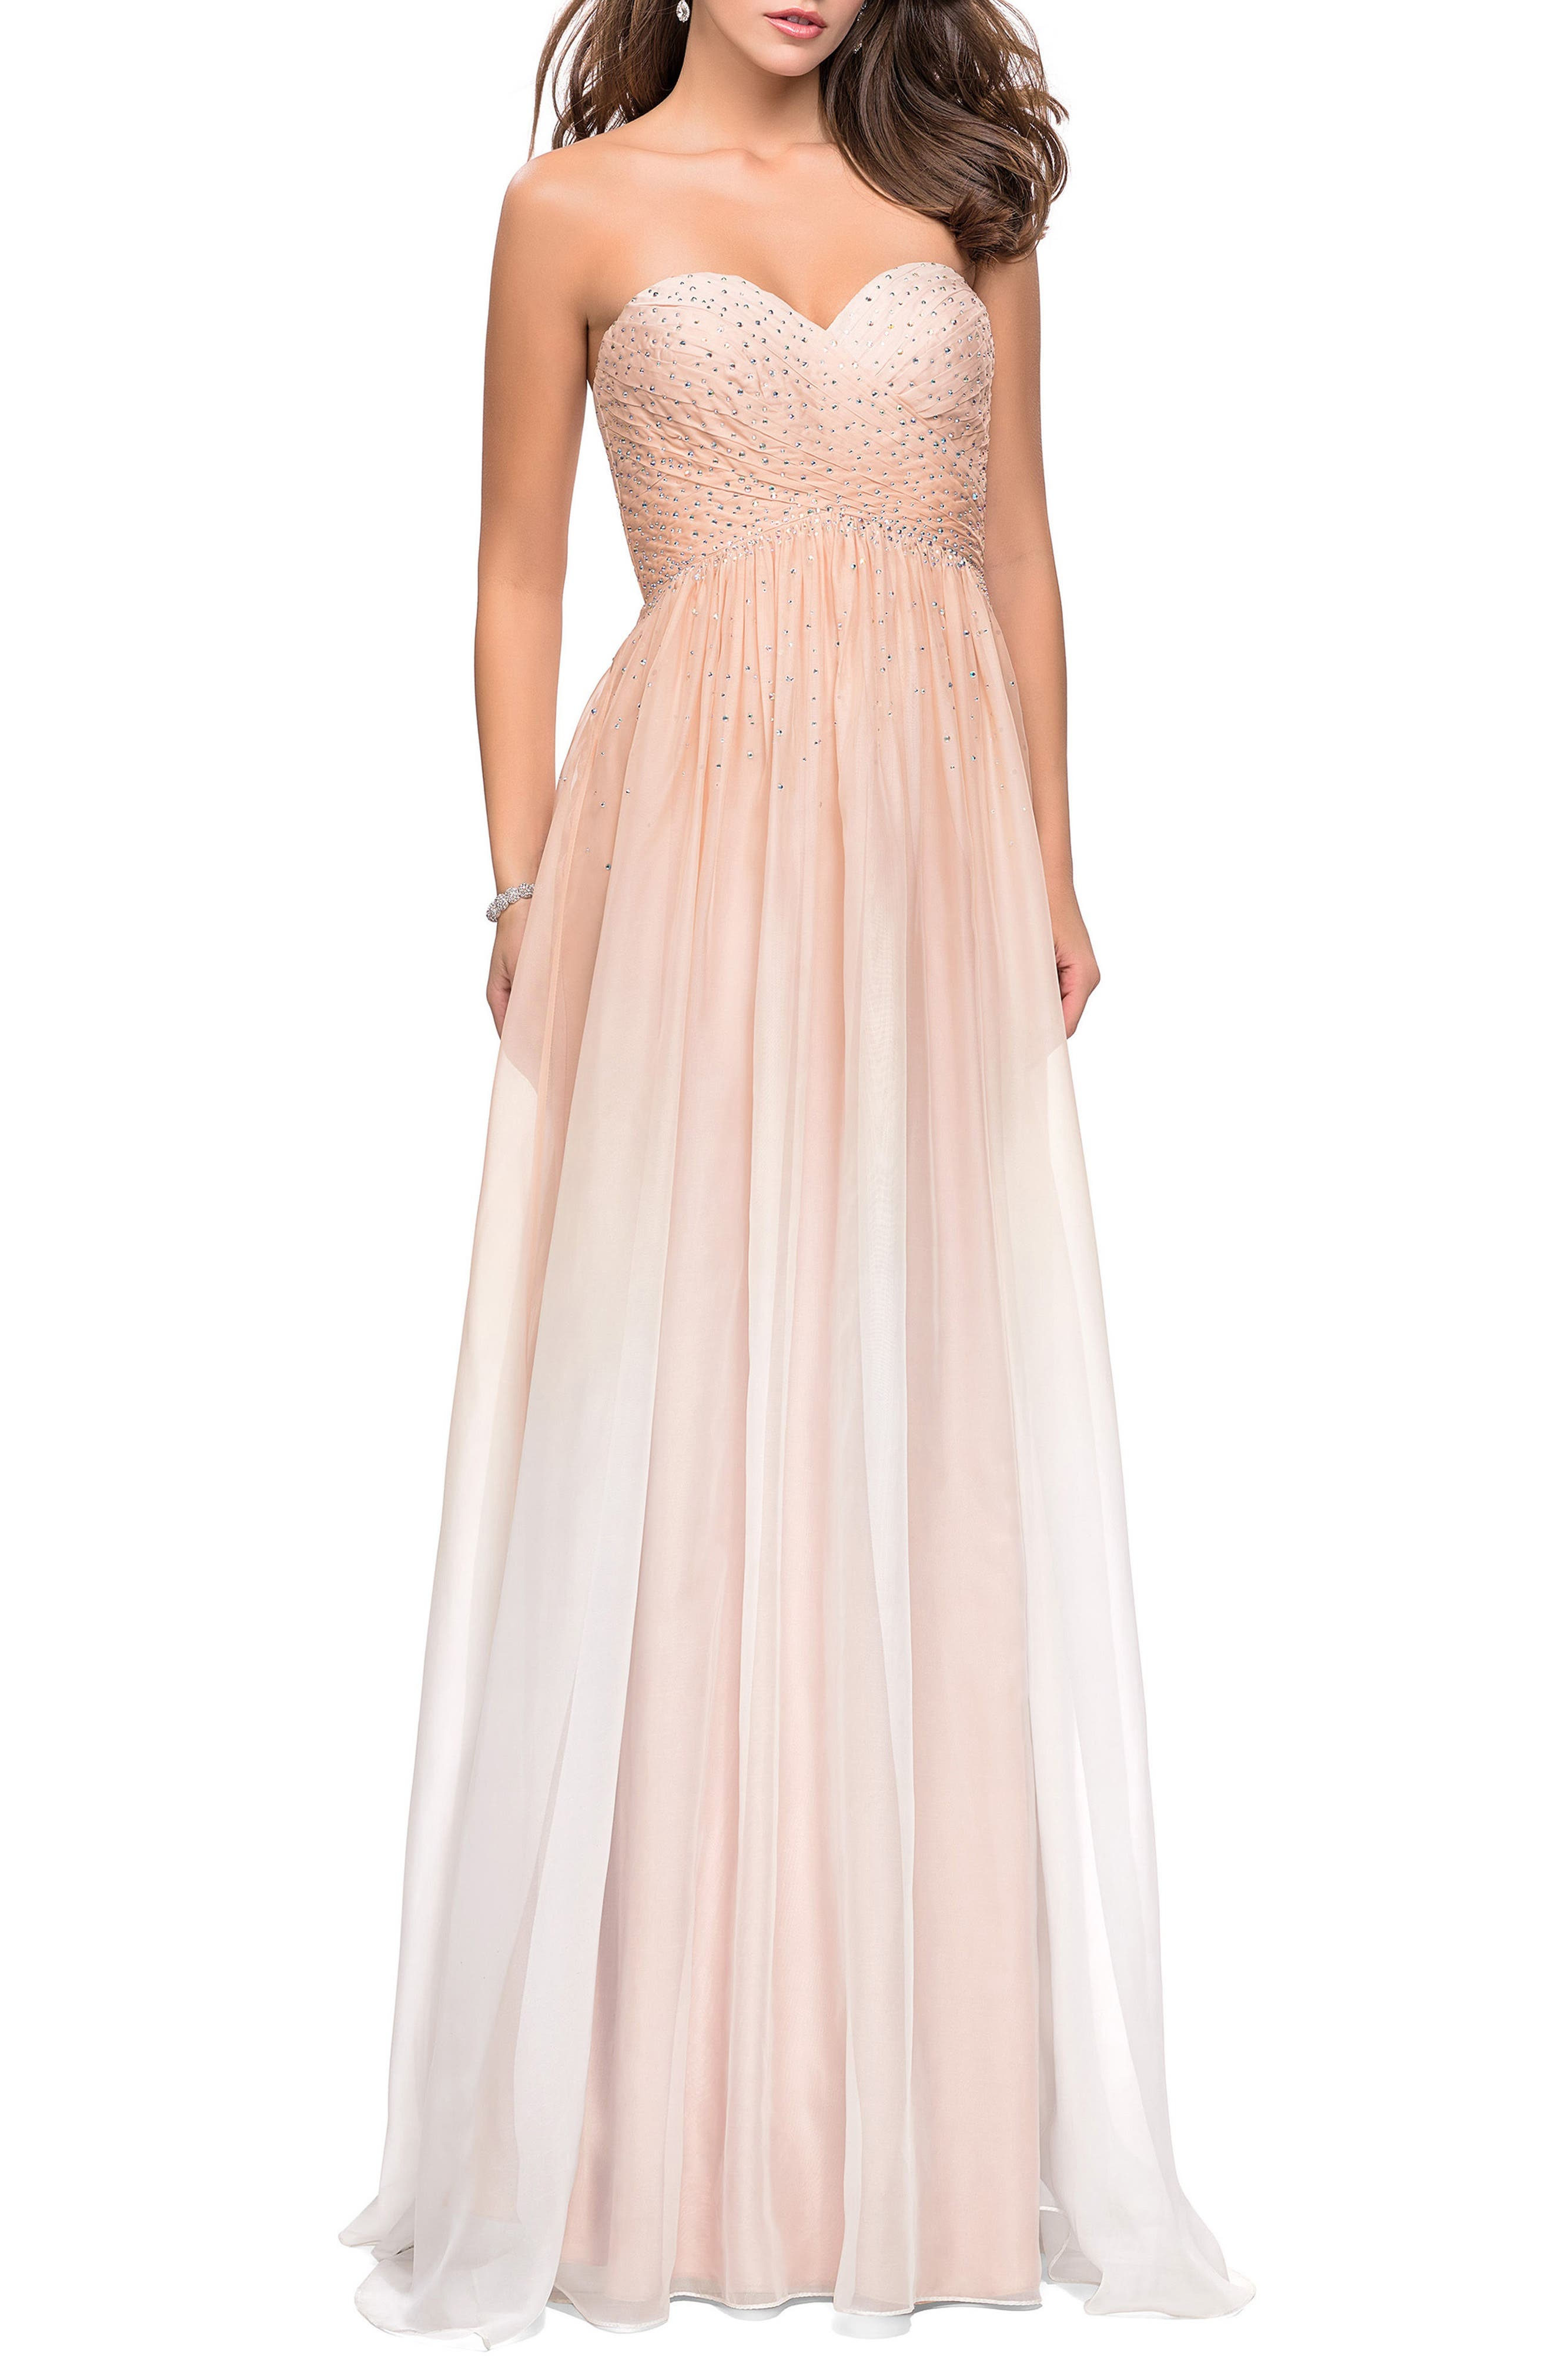 Strapless Chiffon Gown,                             Main thumbnail 1, color,                             250